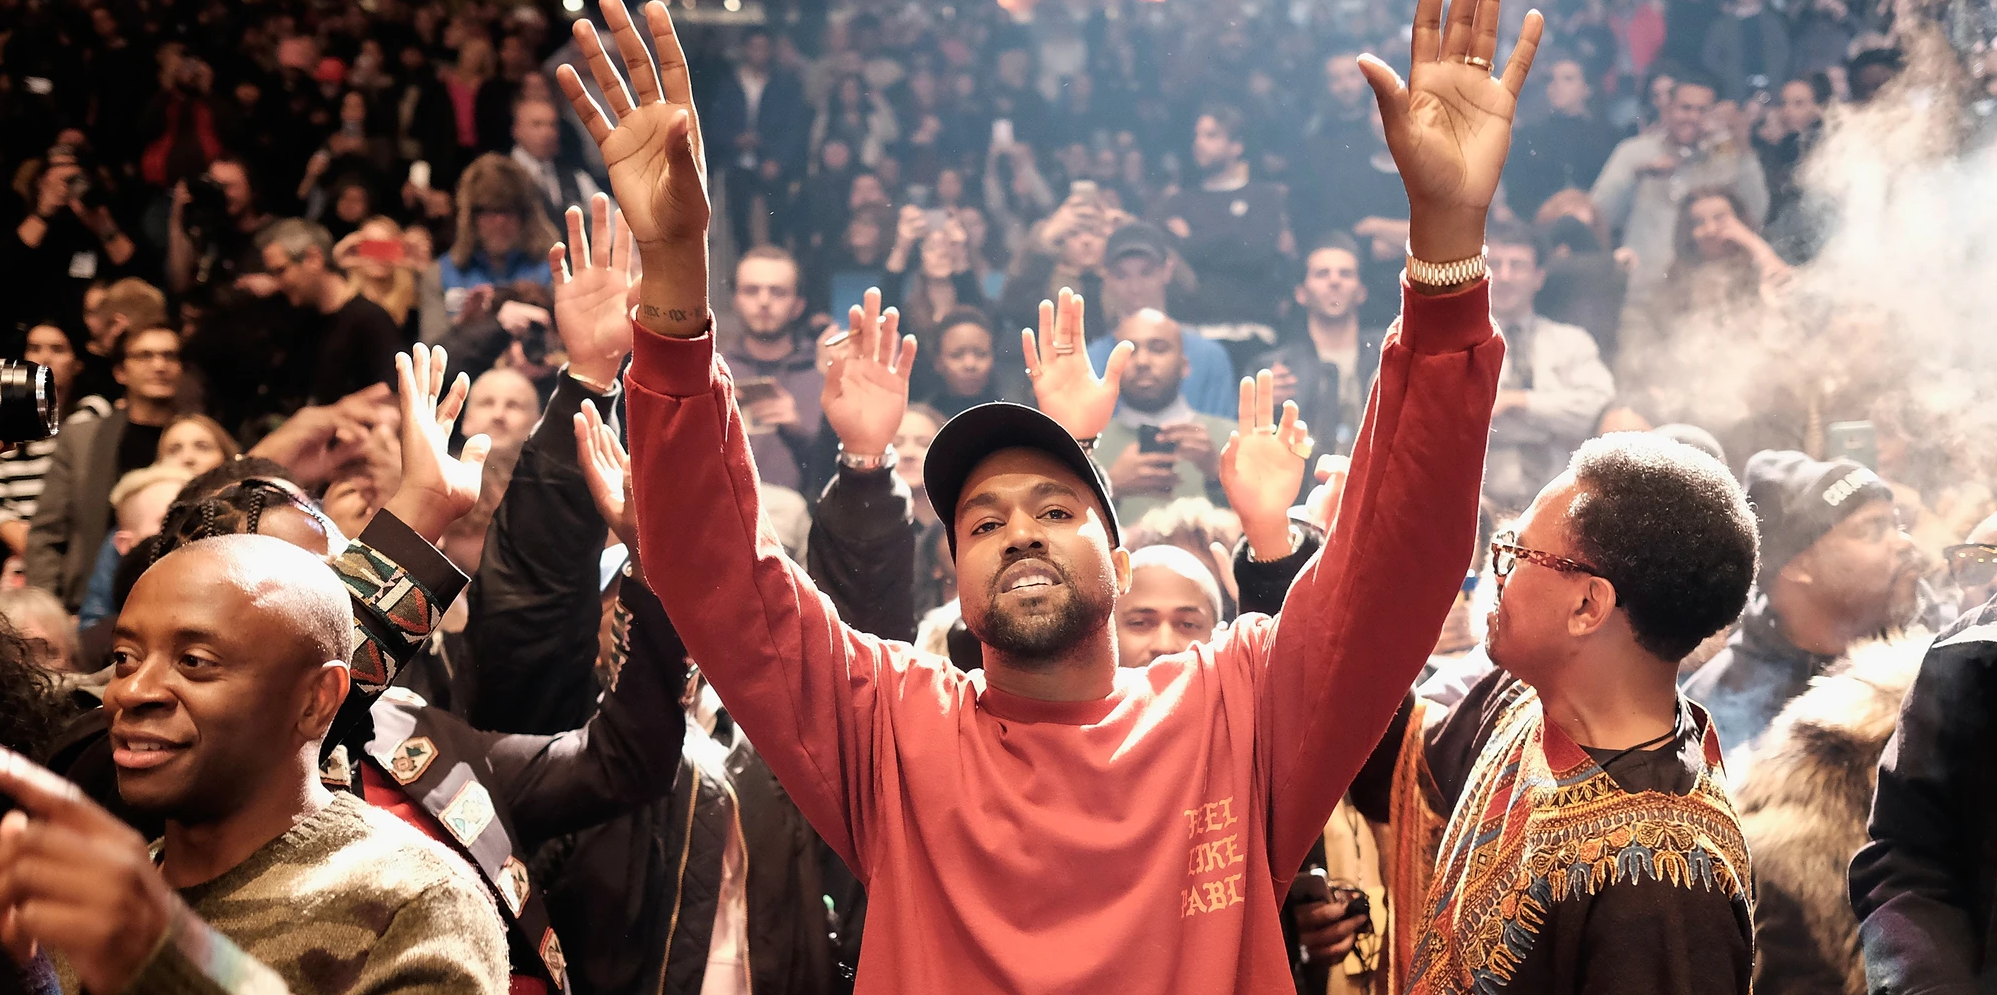 Atheist group protests Kanye West's prison proselytizing